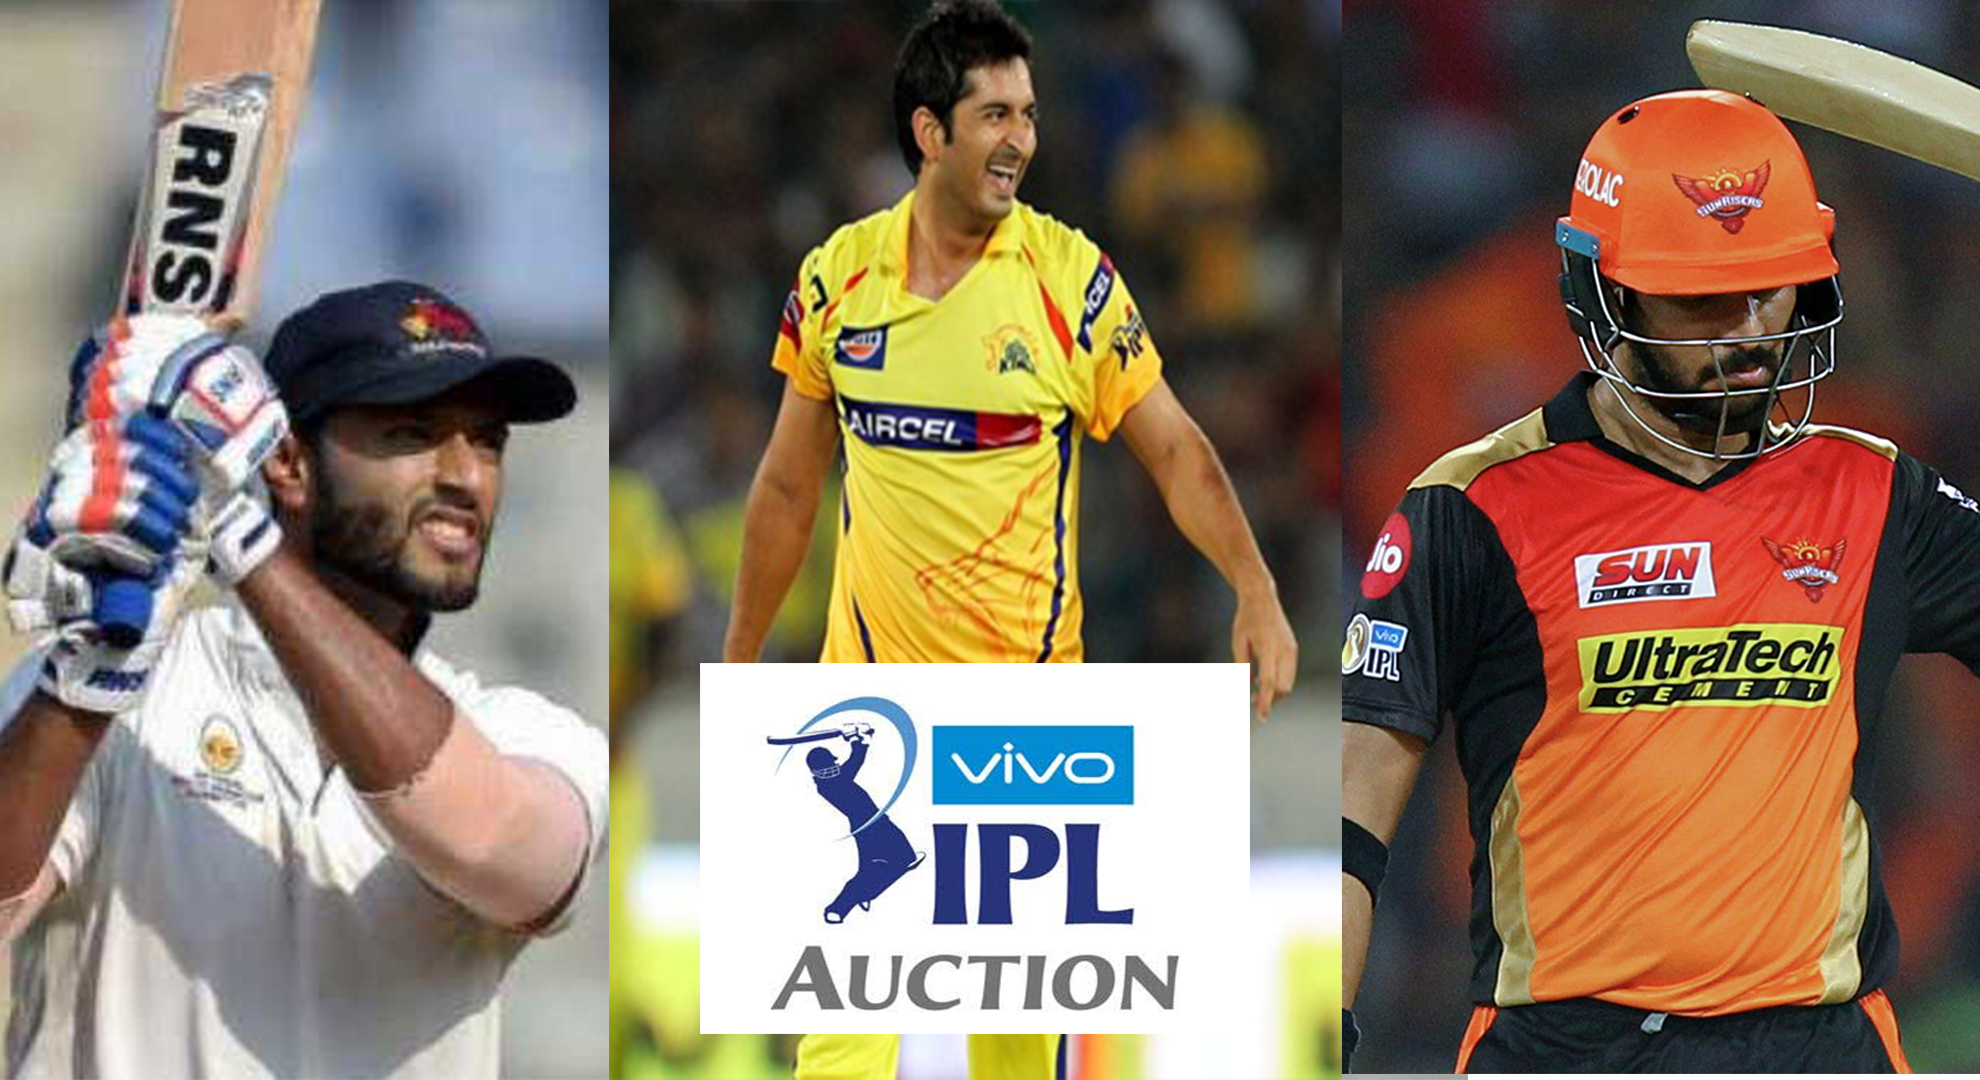 IPL auctions: Here are the key takeaways